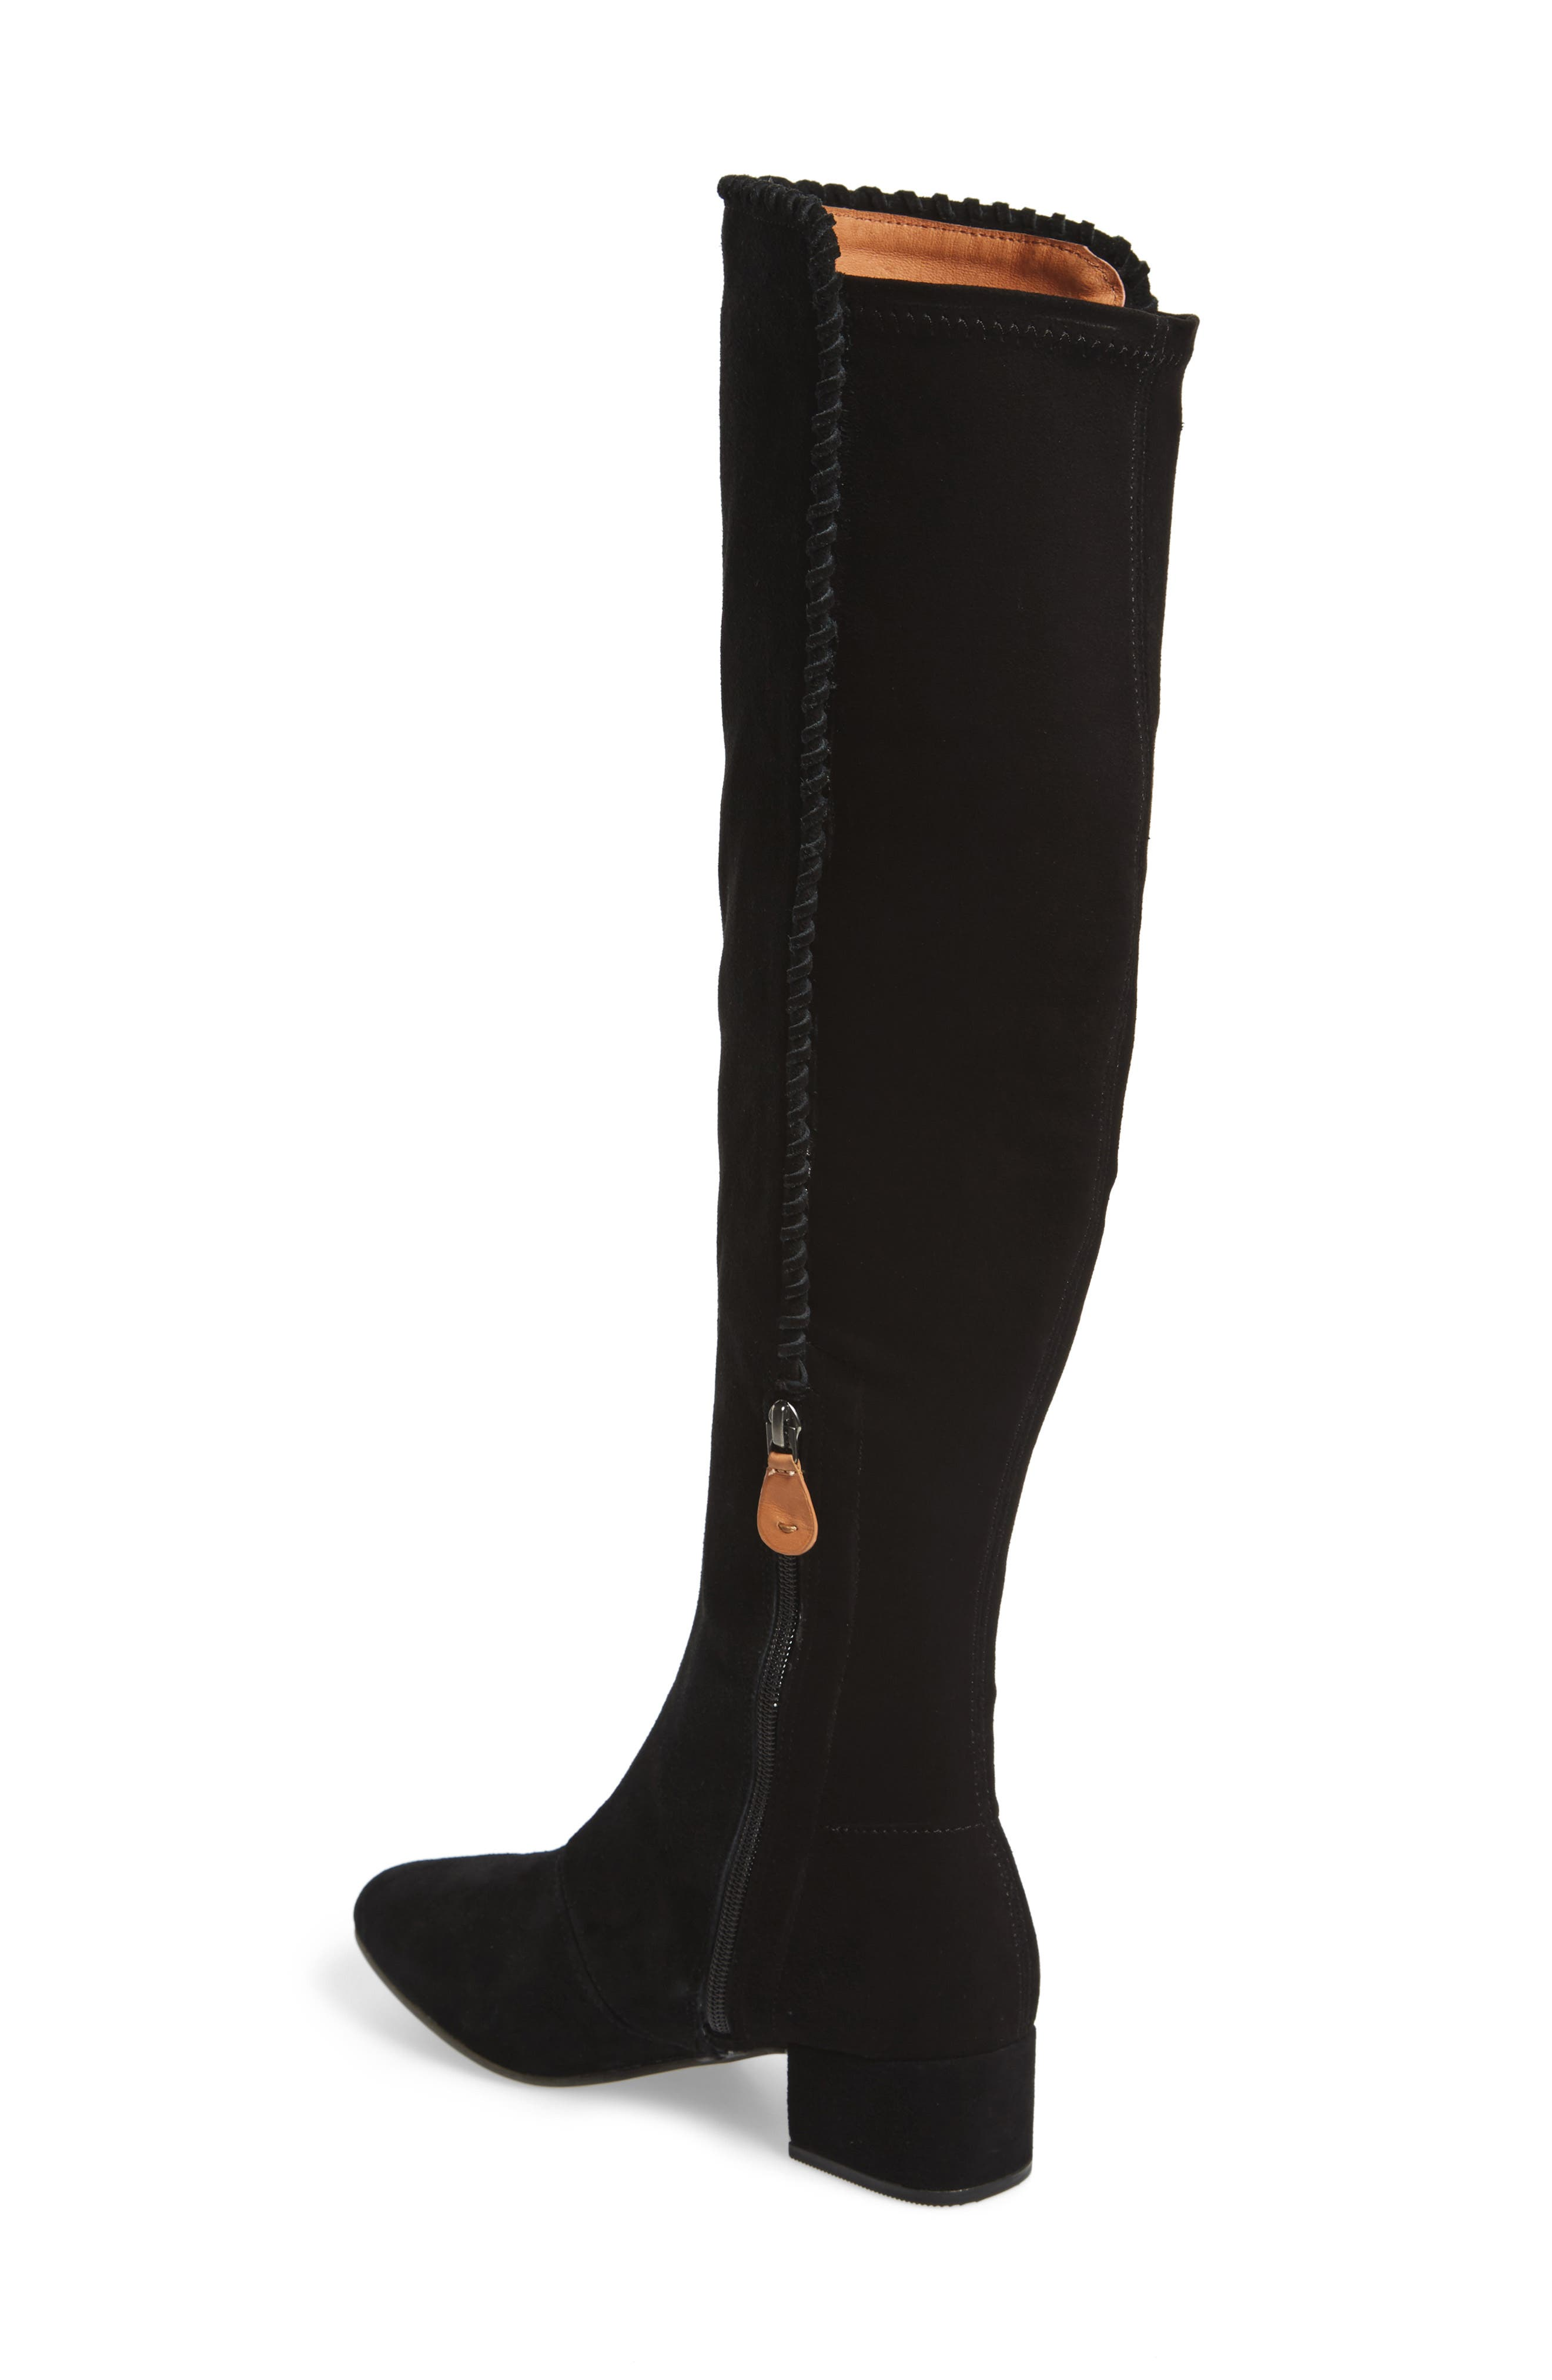 Emery Over the Knee Boot,                             Alternate thumbnail 2, color,                             001